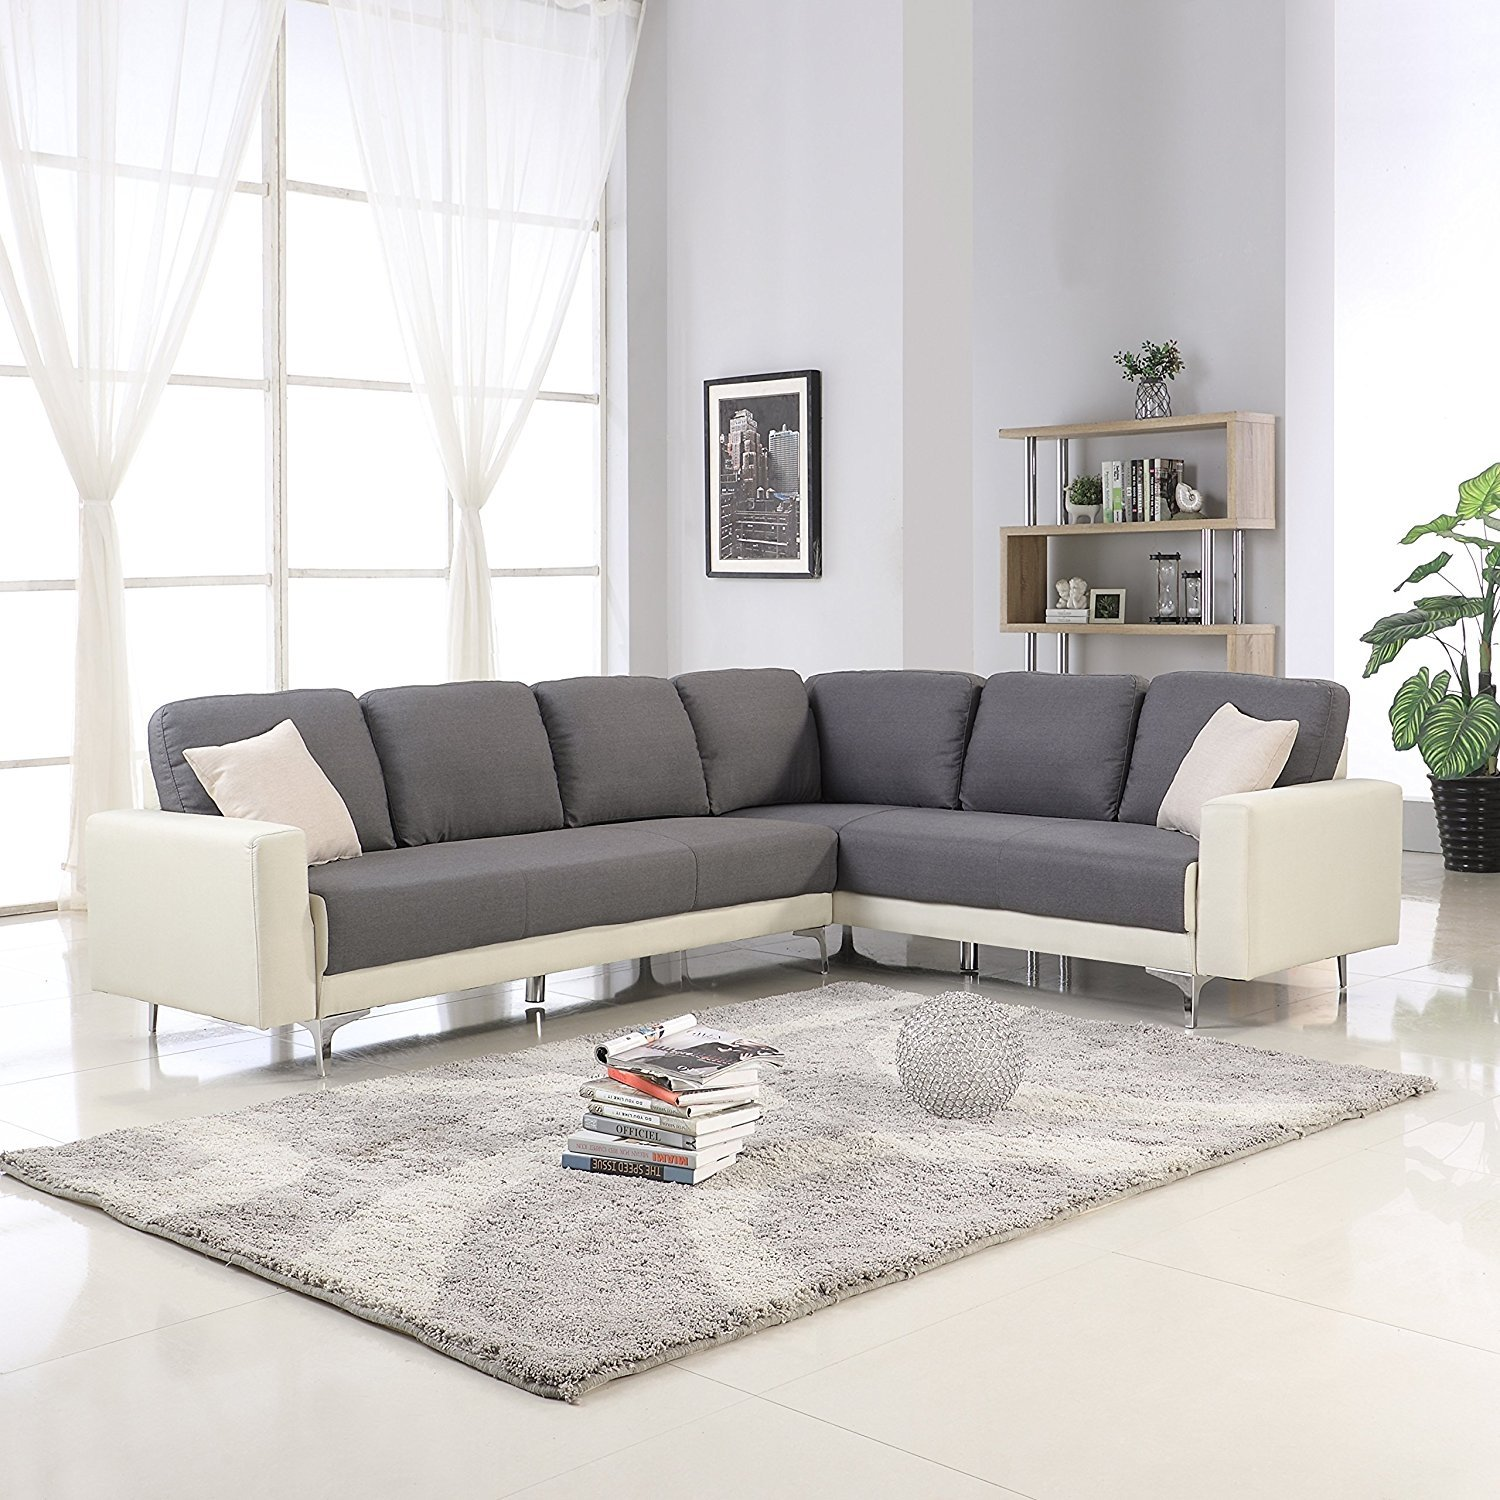 Details about Modern Dark Grey Beige Linen Upholstered L Shape Couch Large  Sectional Sofa